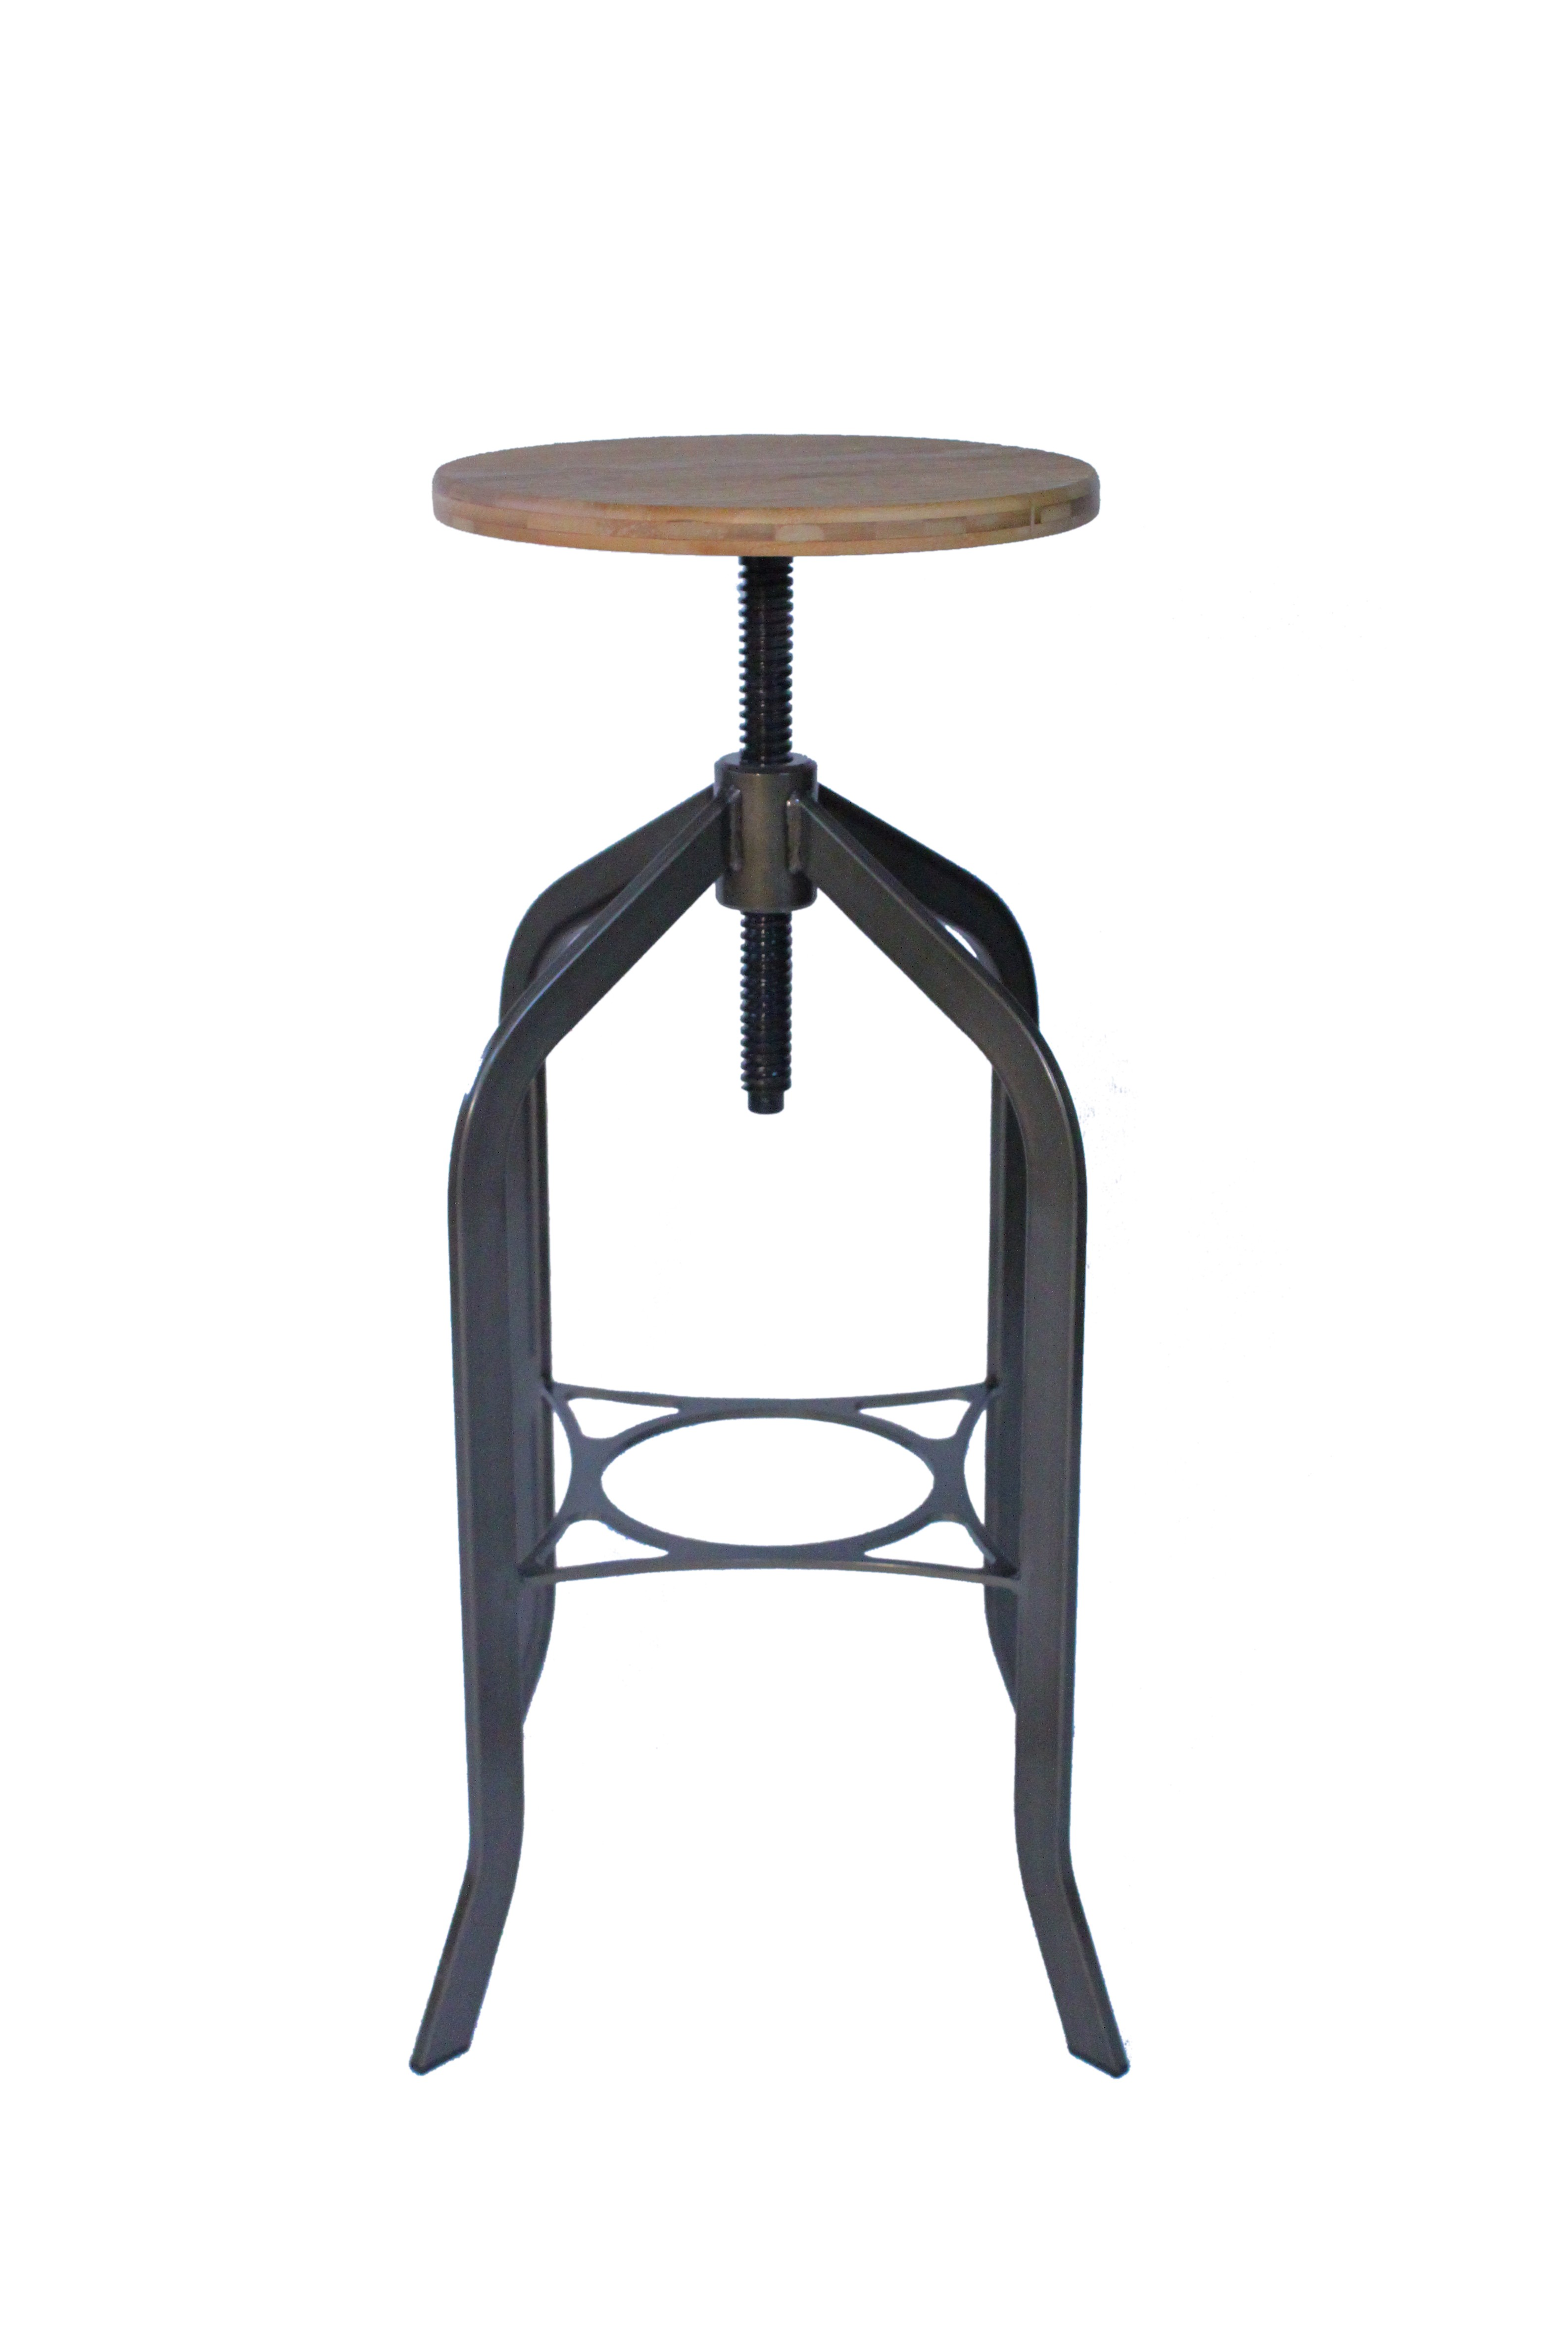 Trento Vintage Bar Stool - Rustic Product Image